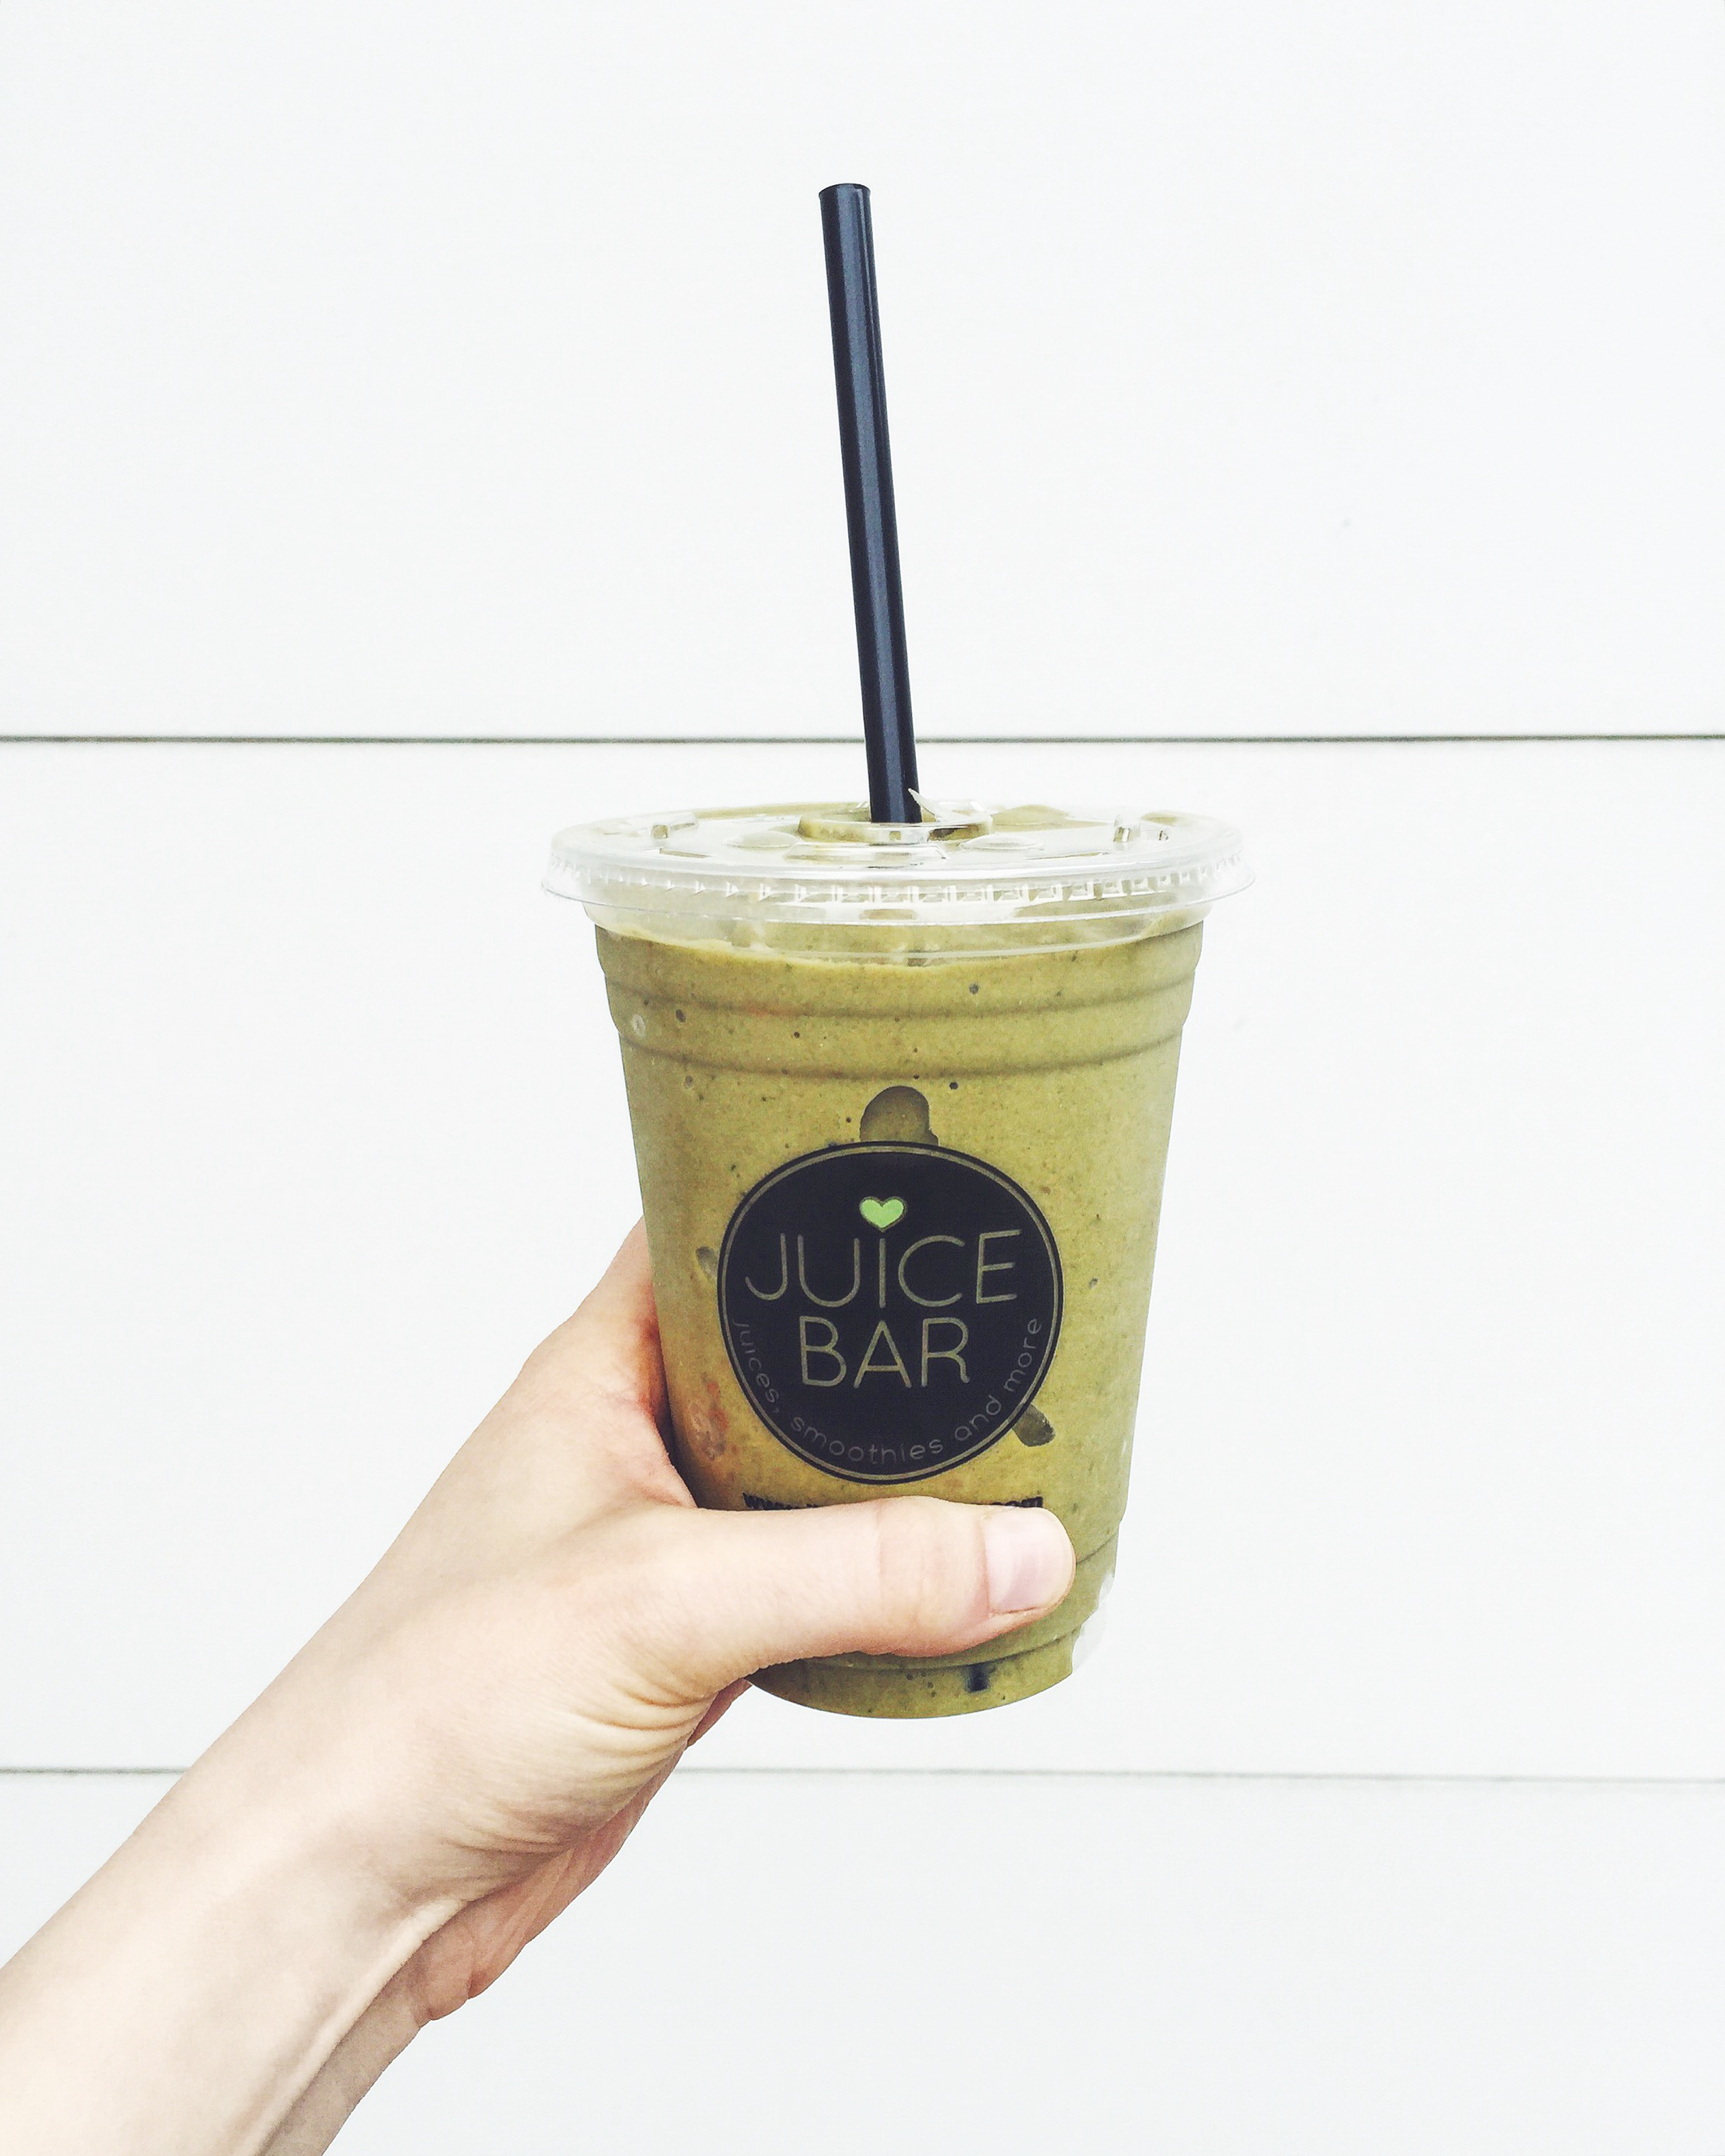 The Juice Bar Smoothie